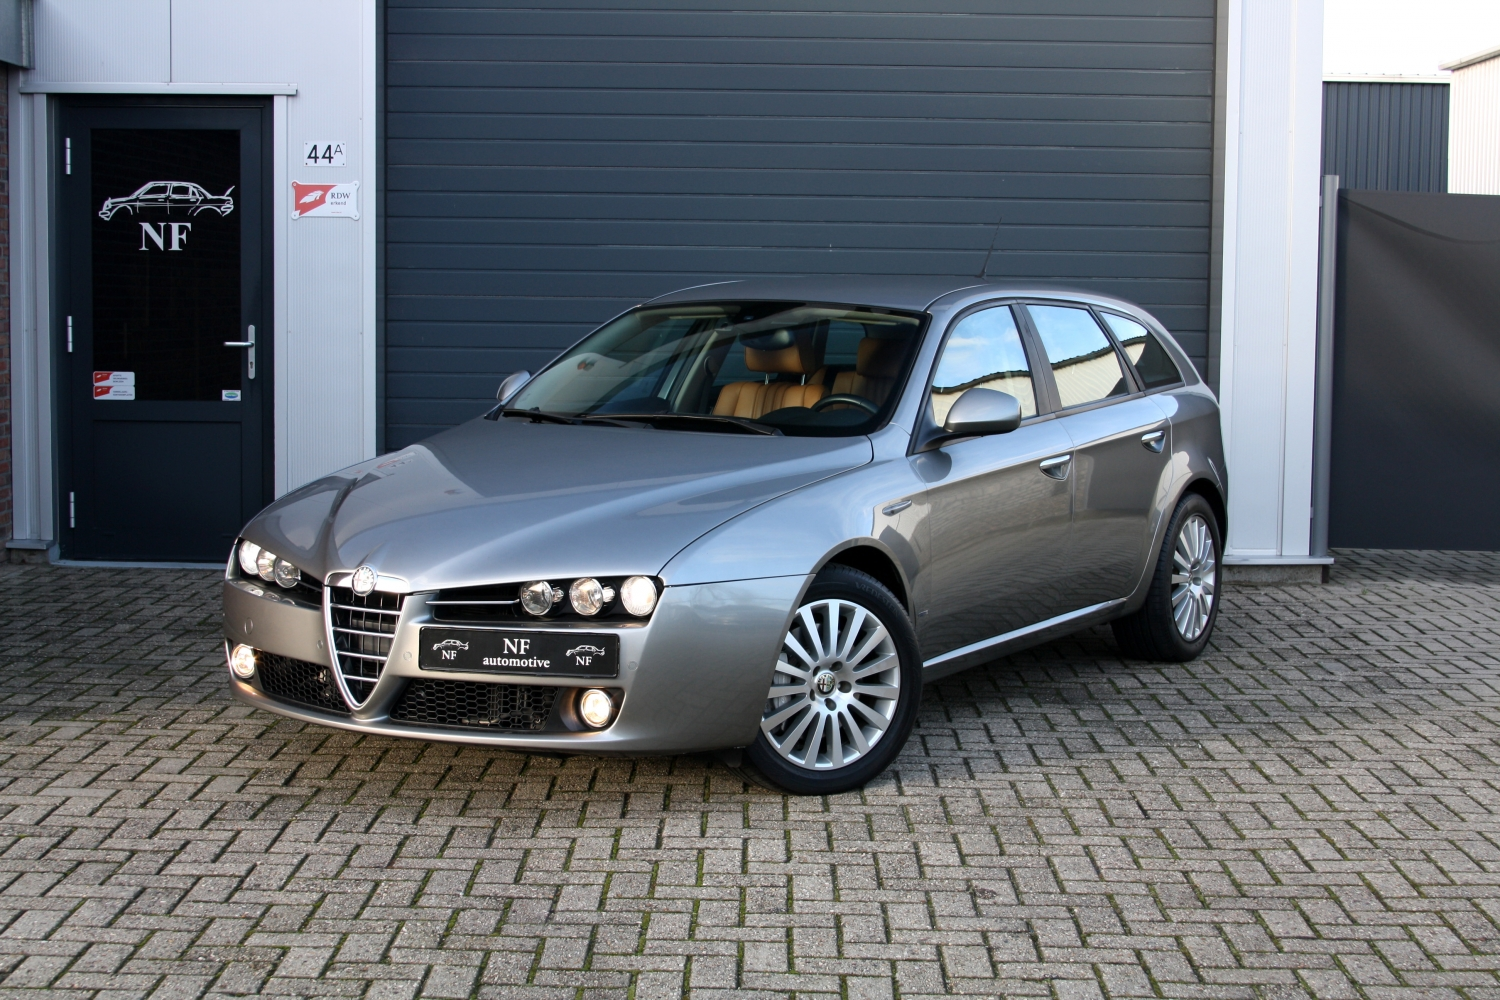 alfa romeo 159 sw 3 2 v6 jts q4 distinctive kopen bij nf. Black Bedroom Furniture Sets. Home Design Ideas